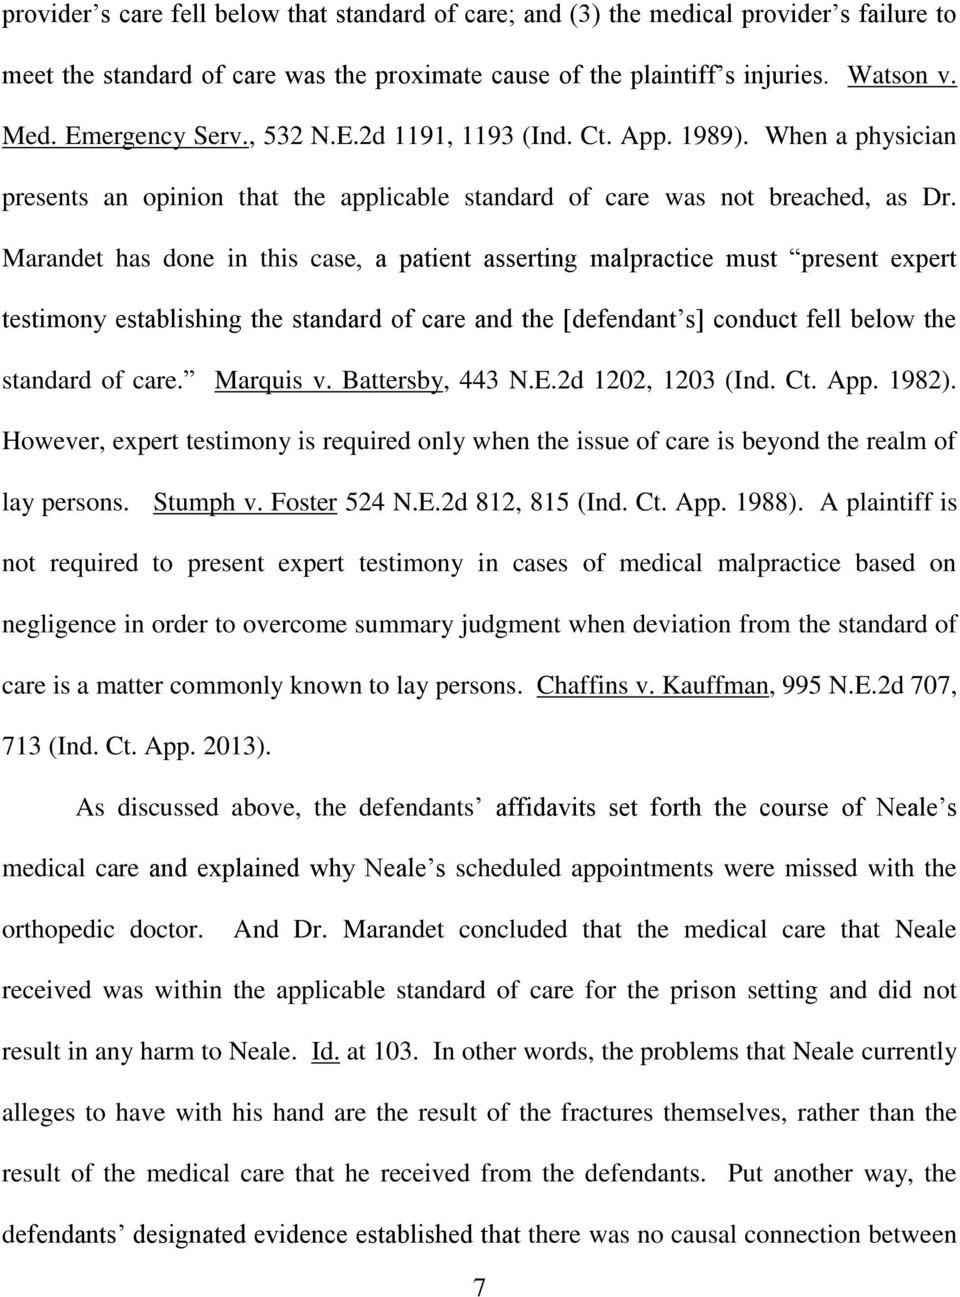 Marandet has done in this case, a patient asserting malpractice must present expert testimony establishing the standard of care and the [defendant s] conduct fell below the standard of care.